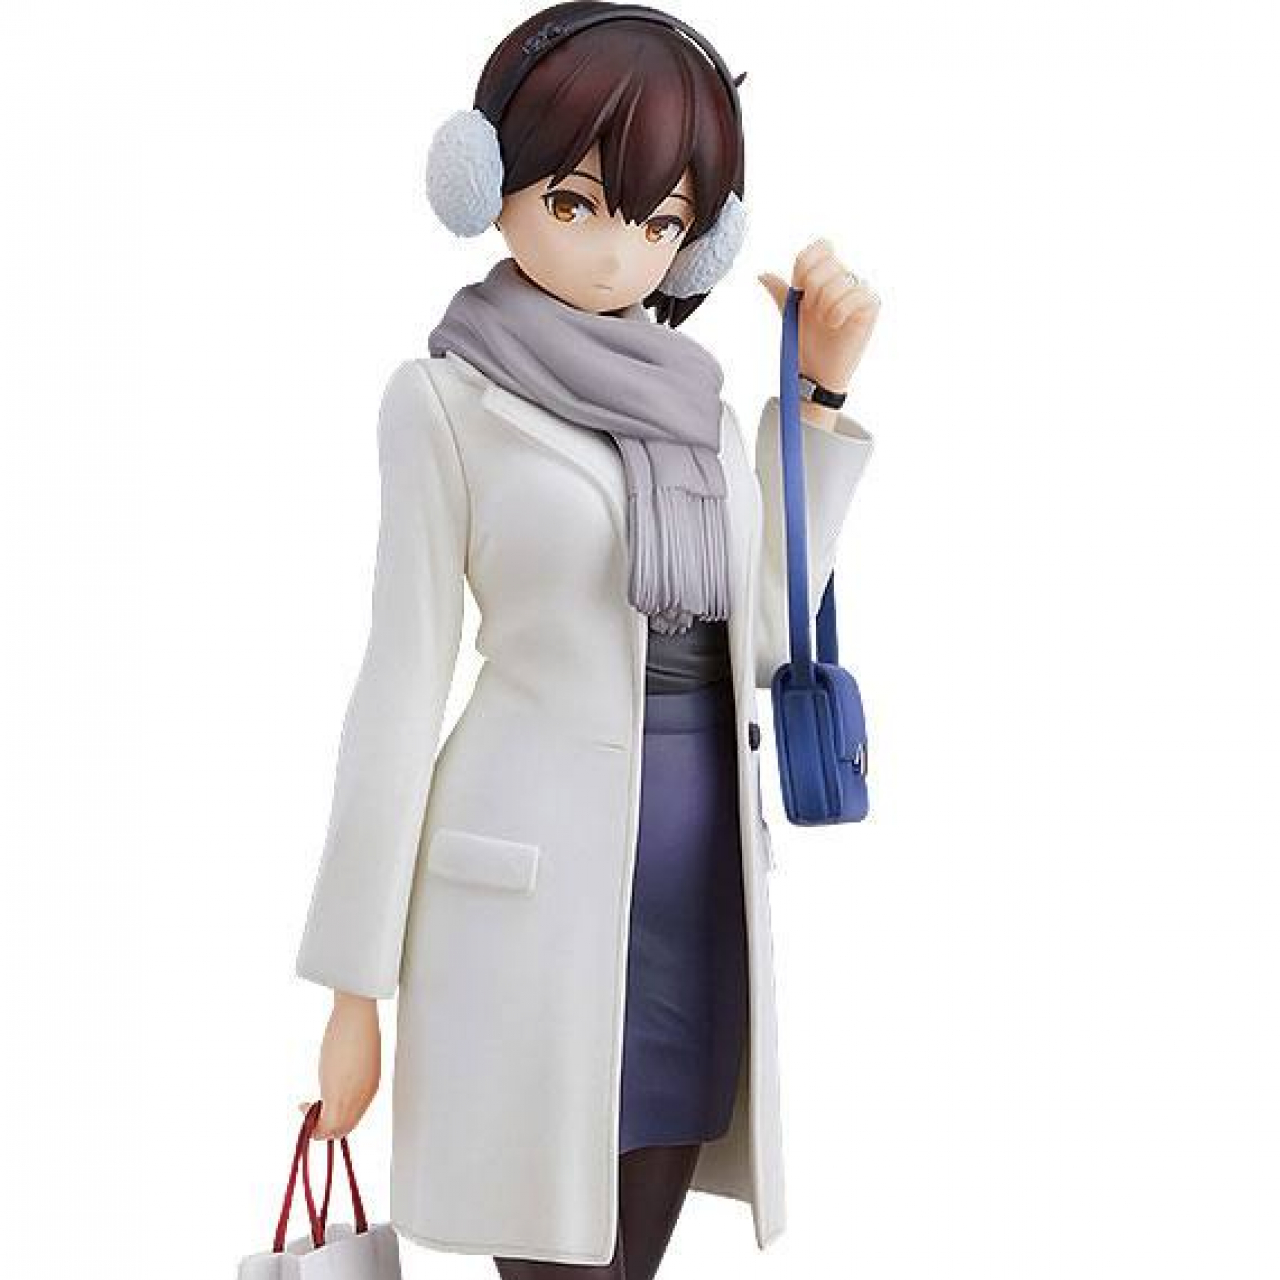 Kantai Collection PVC Statue 1/8 Kaga Shopping Mode 21 cm